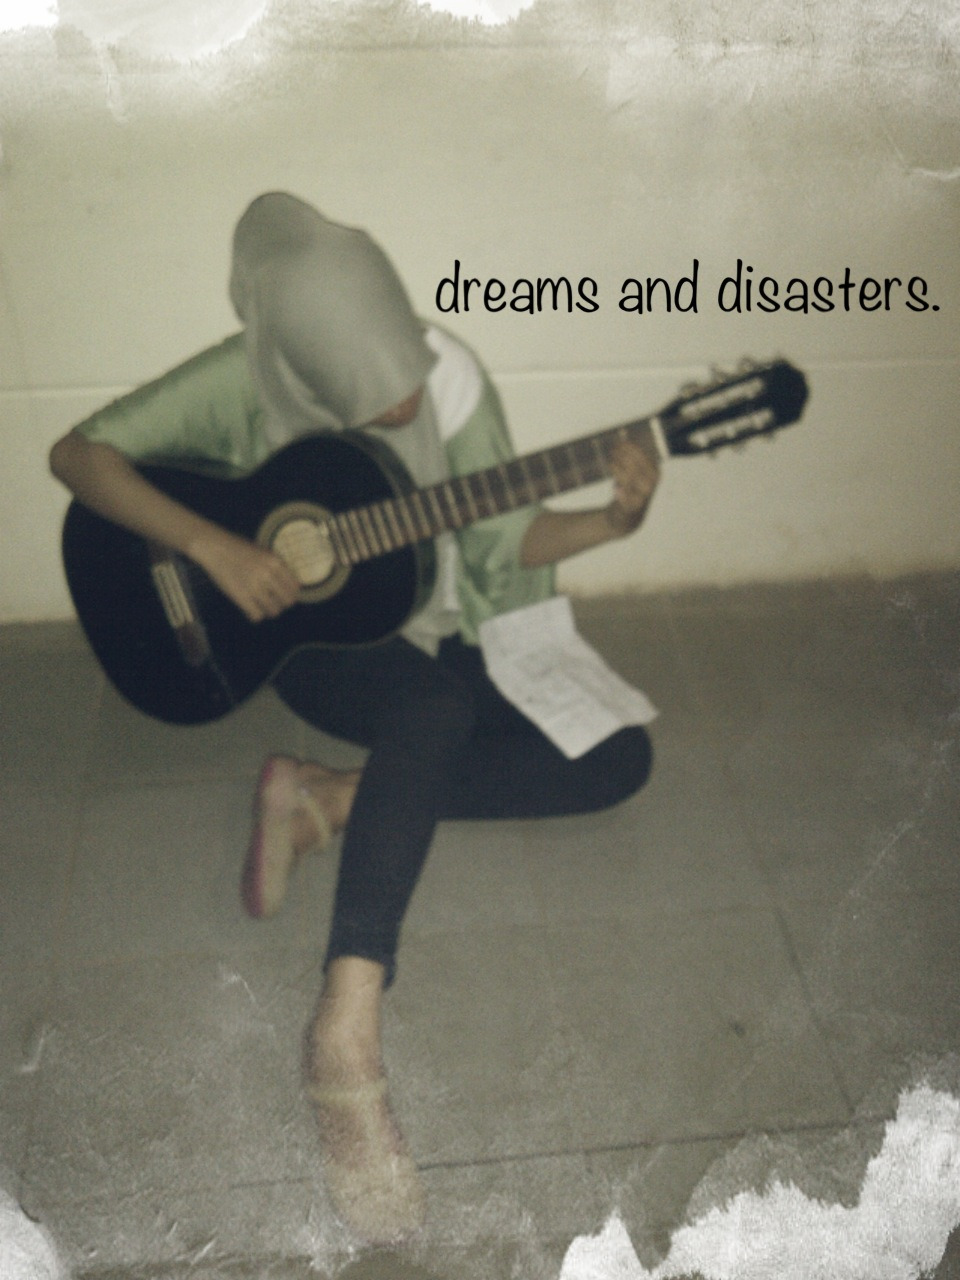 Dreams and Disasters.